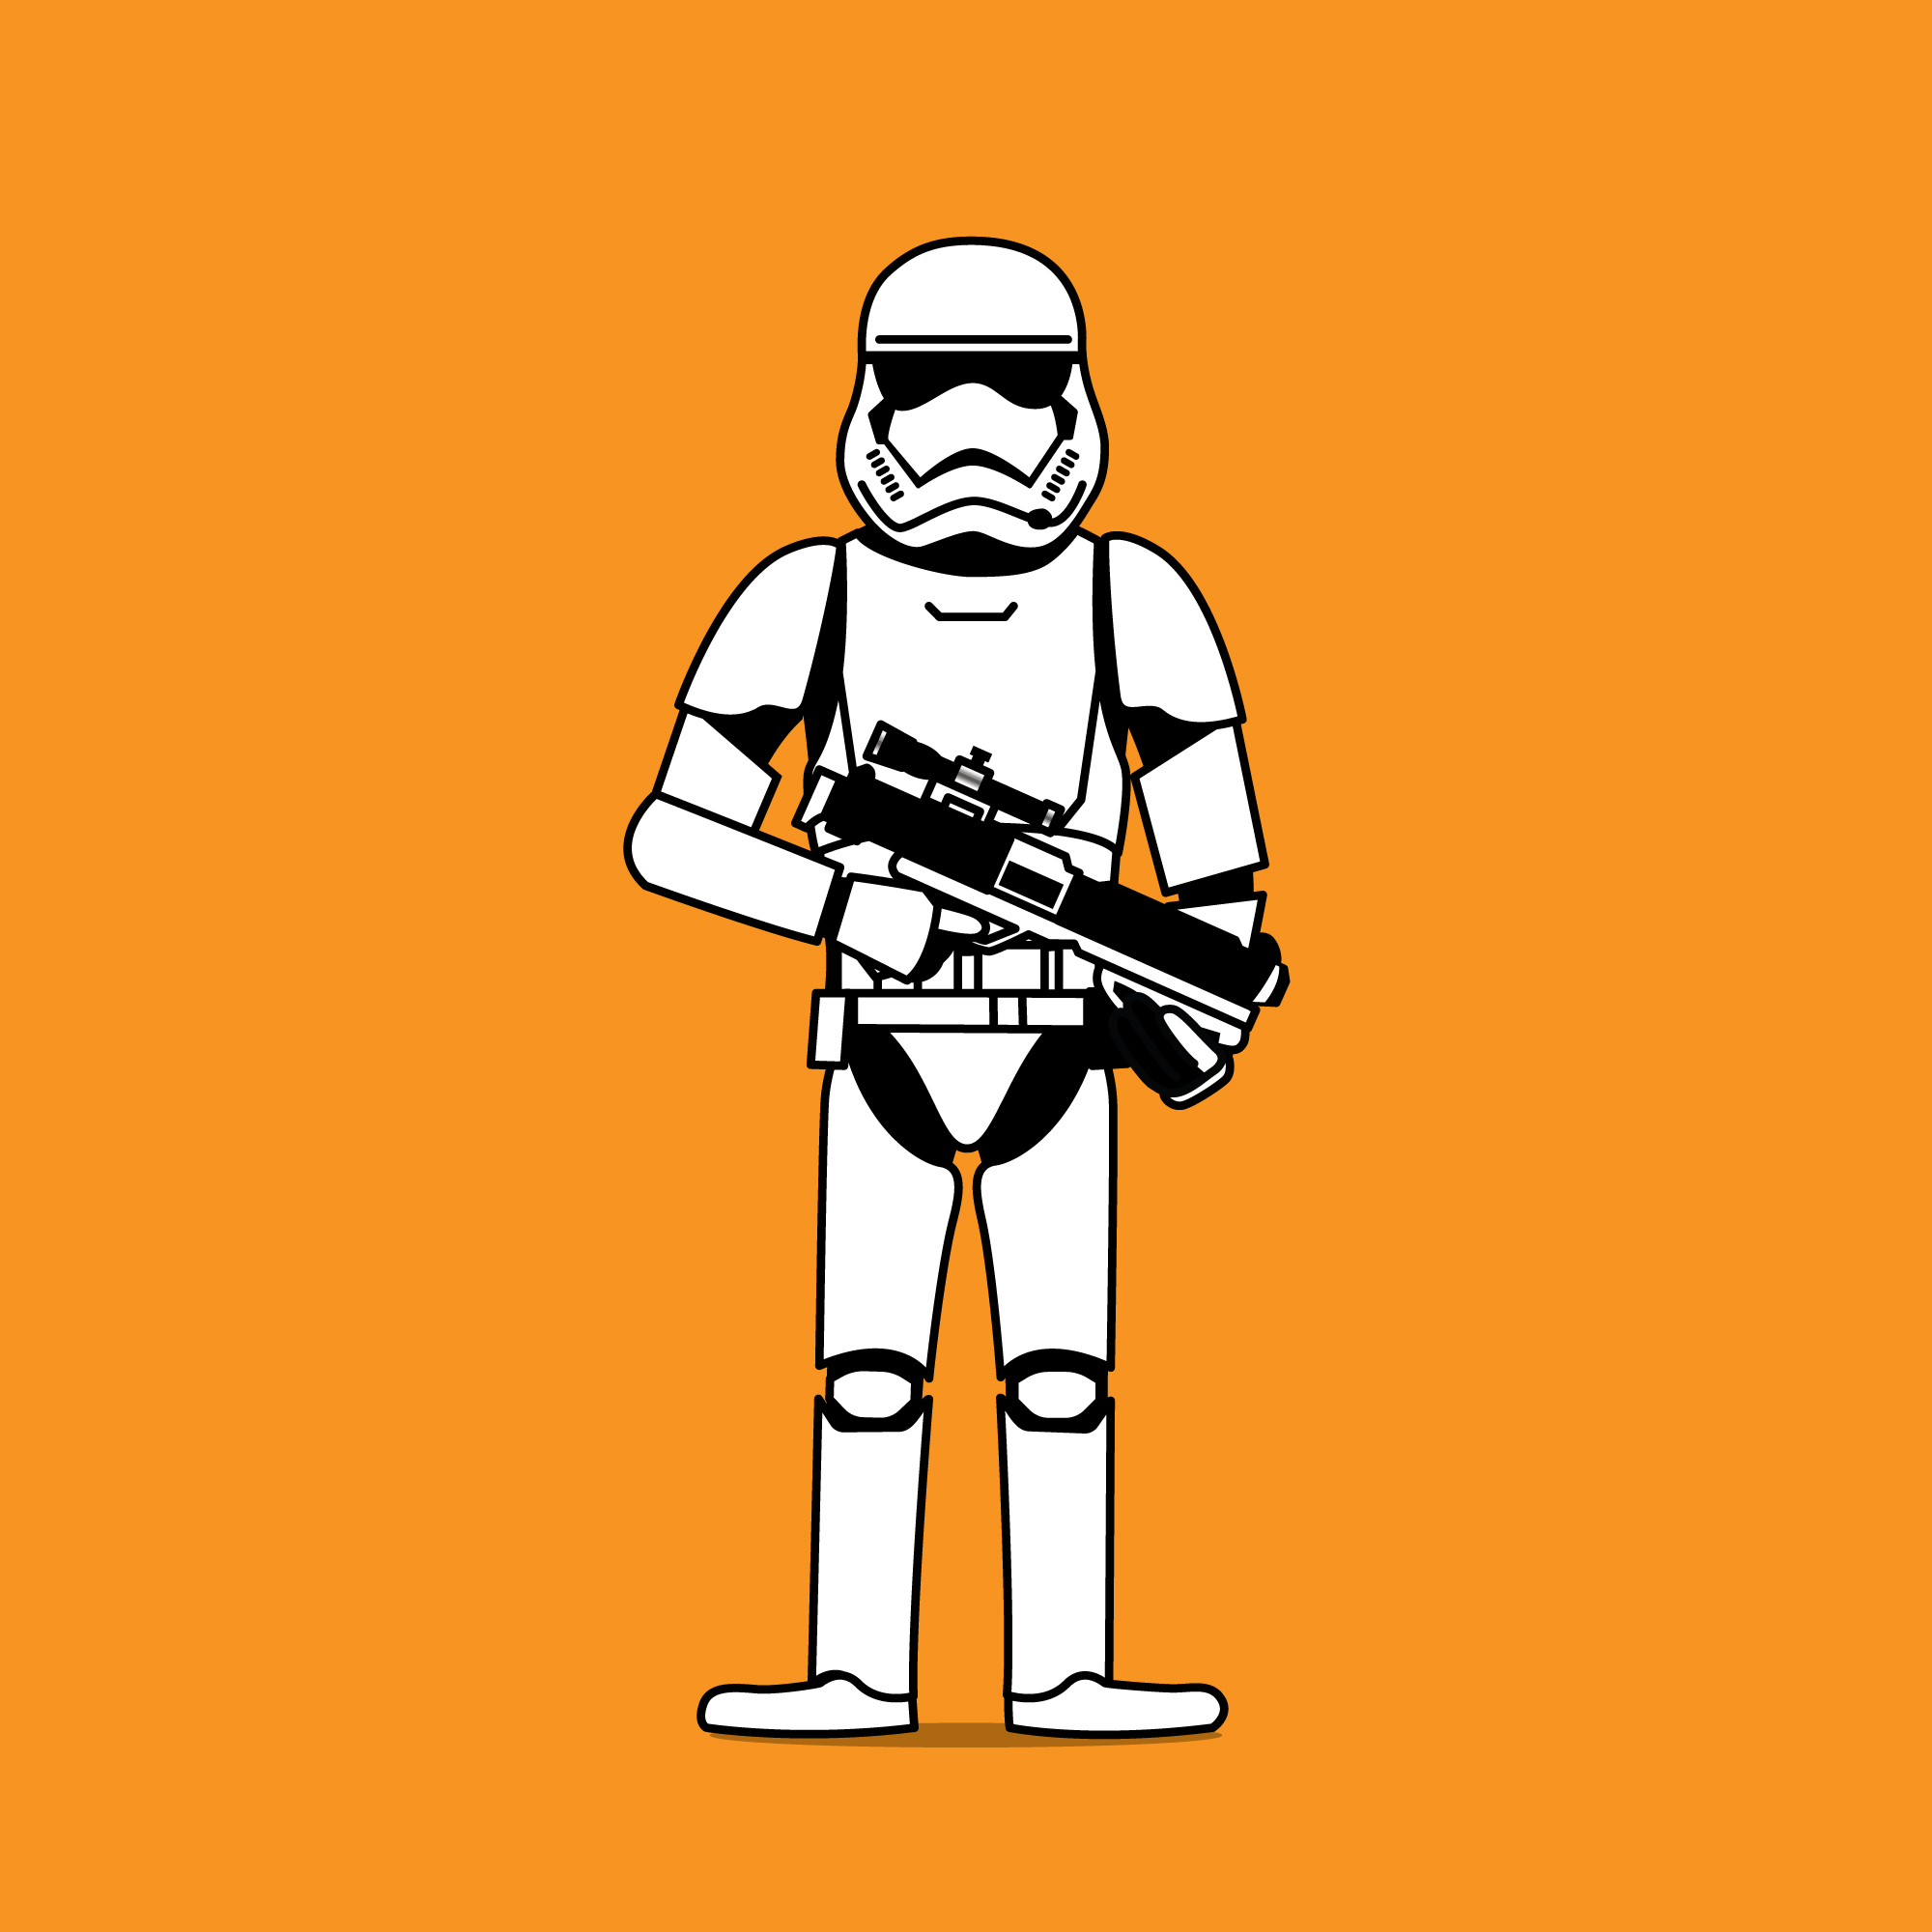 Stormtrooper-FirstOrder-1.jpg